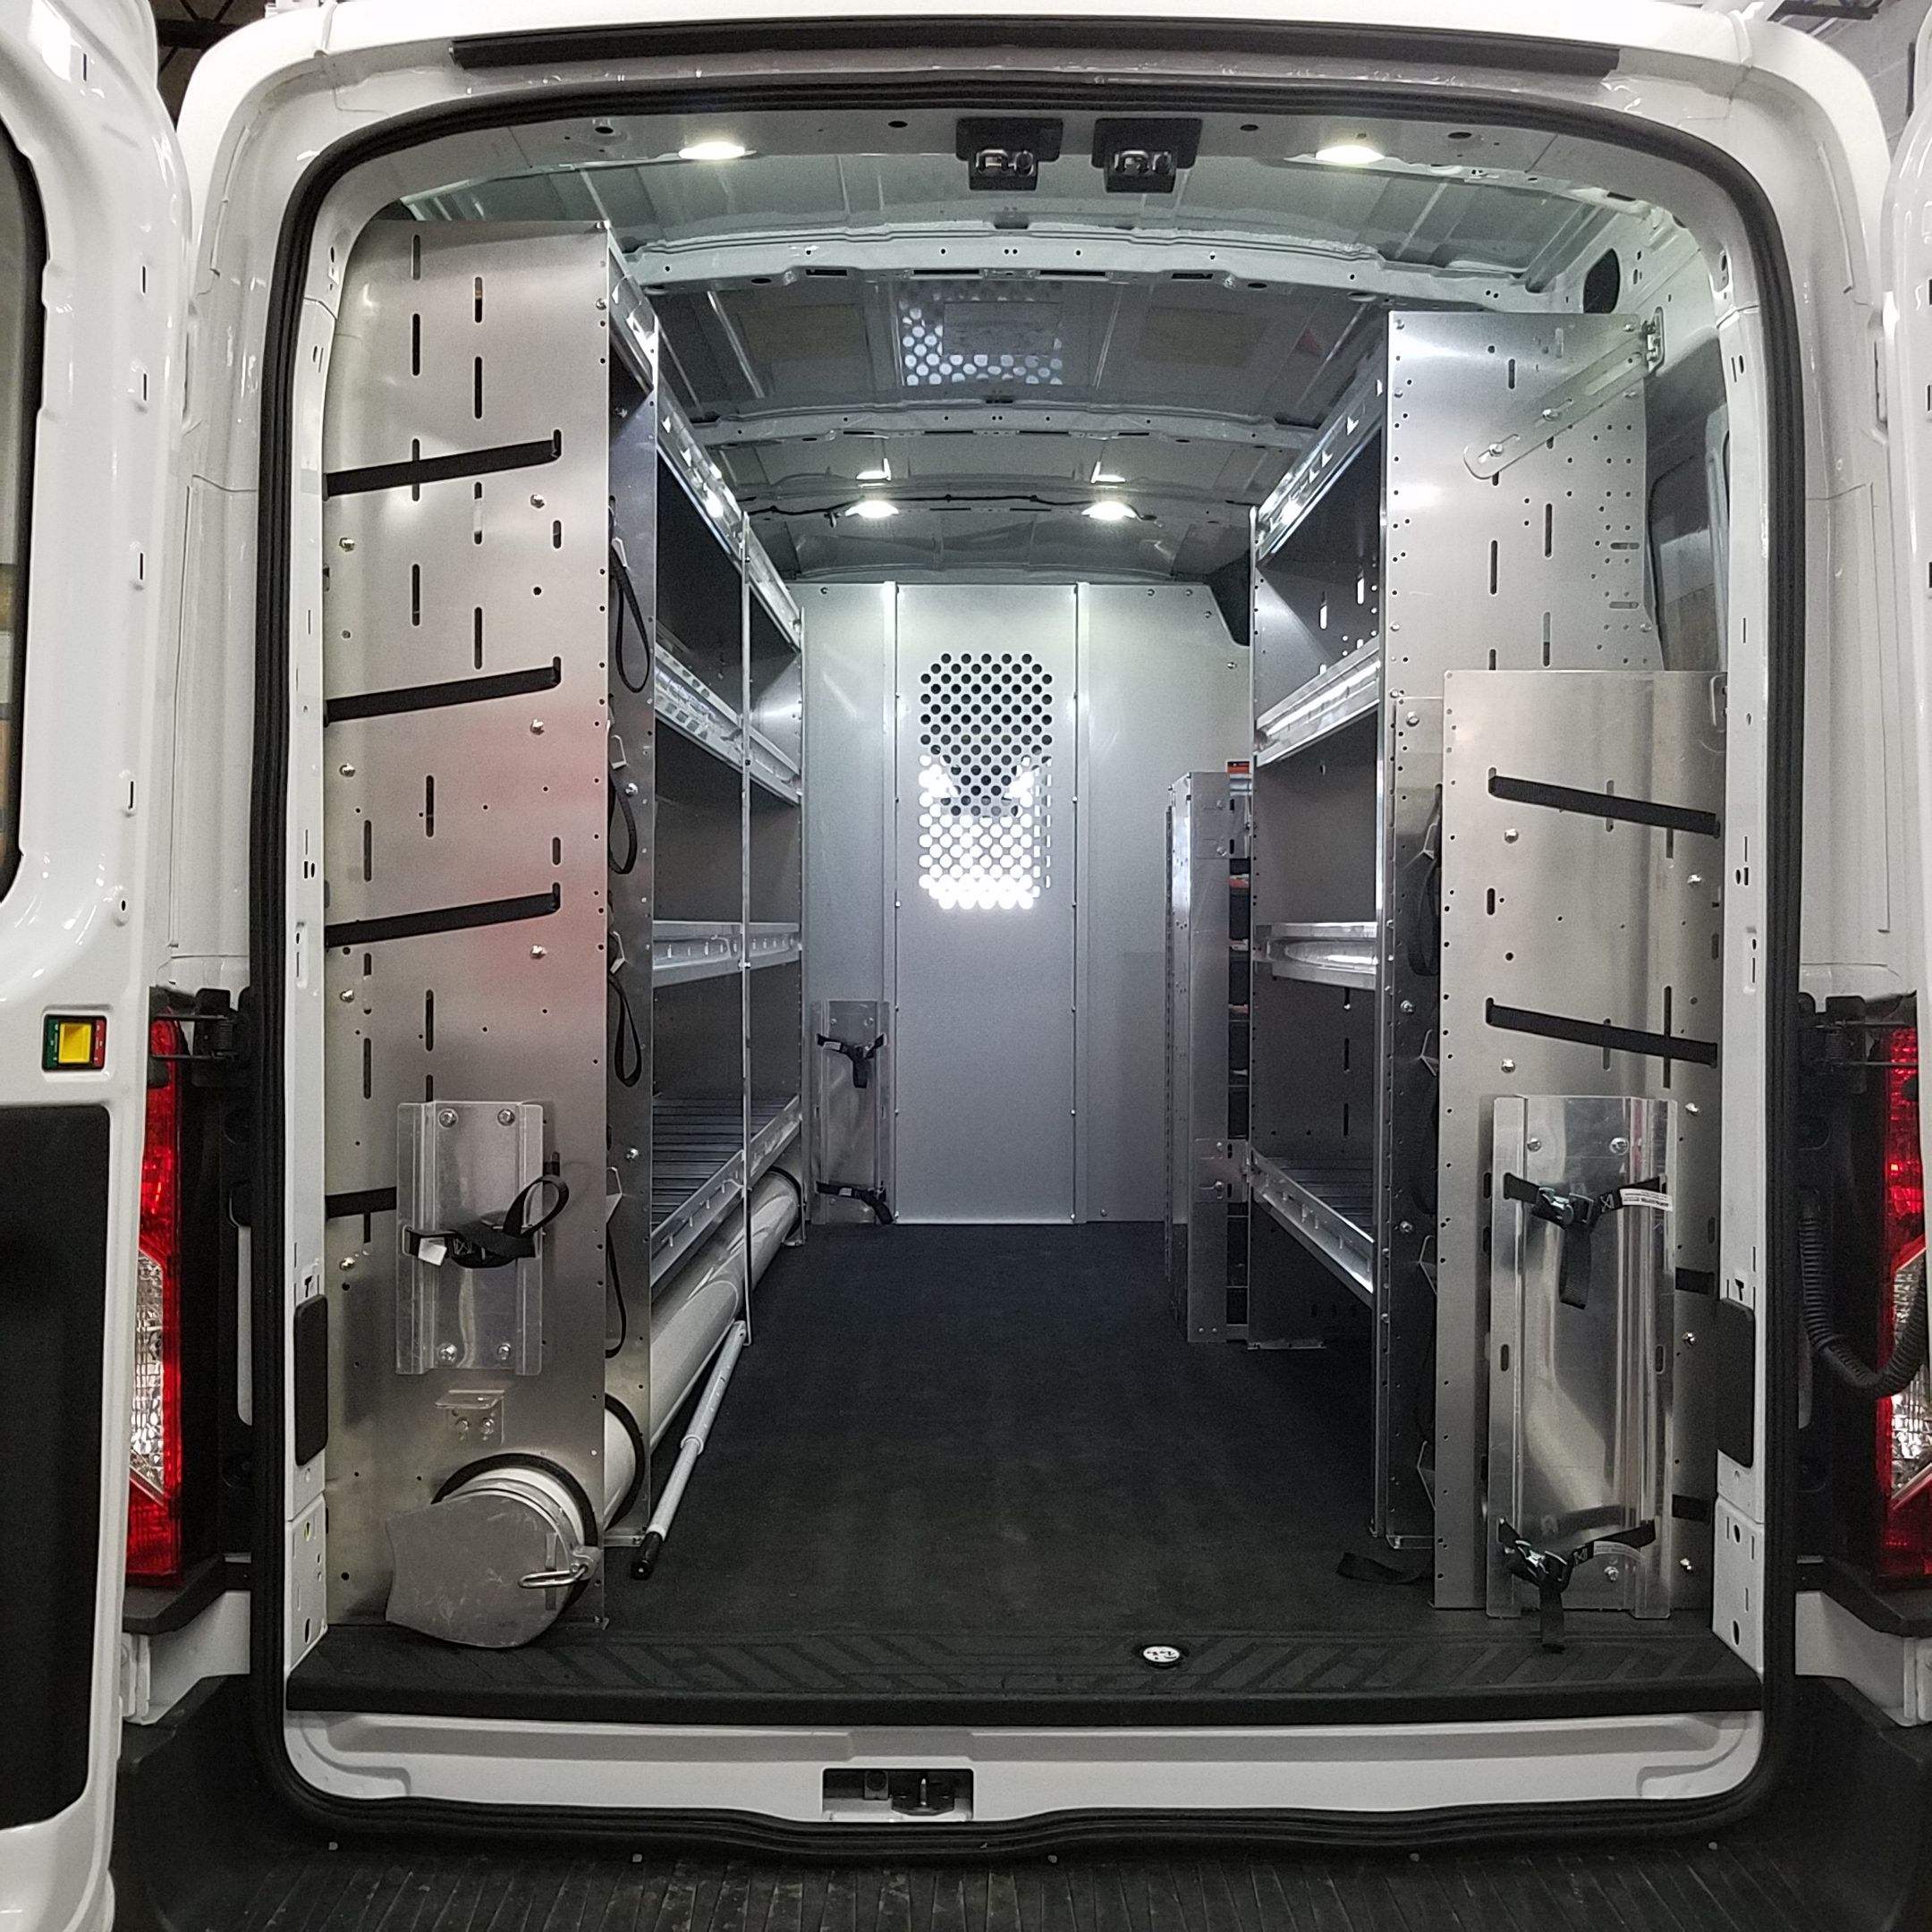 Check Out Our Van Shelving Packages Including Racks And Bins For Cargo Work Vans Featuring Shelving For Electricians Plumb Van Shelving Van Storage Hvac Work